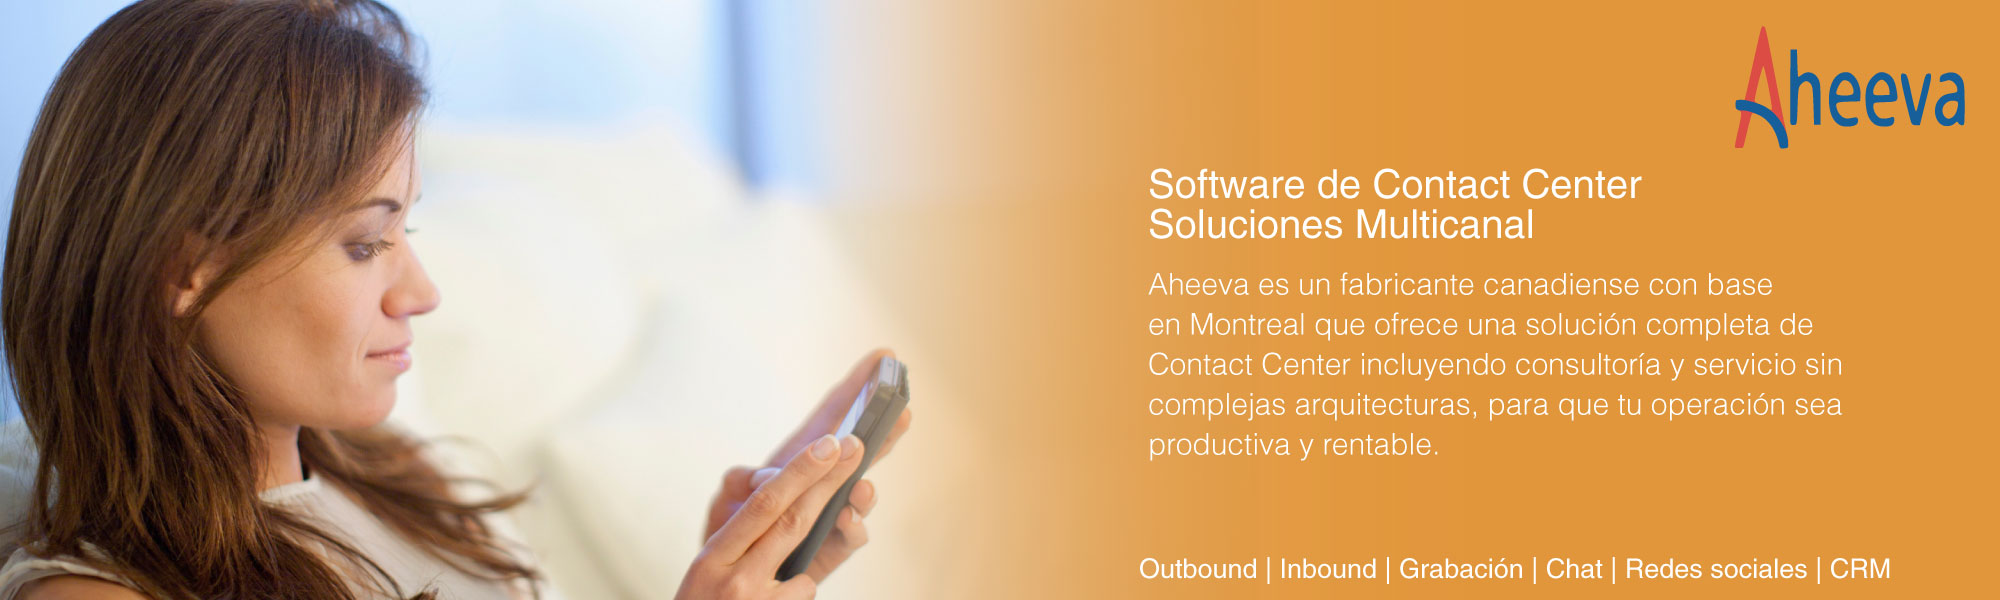 Aheeva - Software de Contact Center Soluciones Multicanal